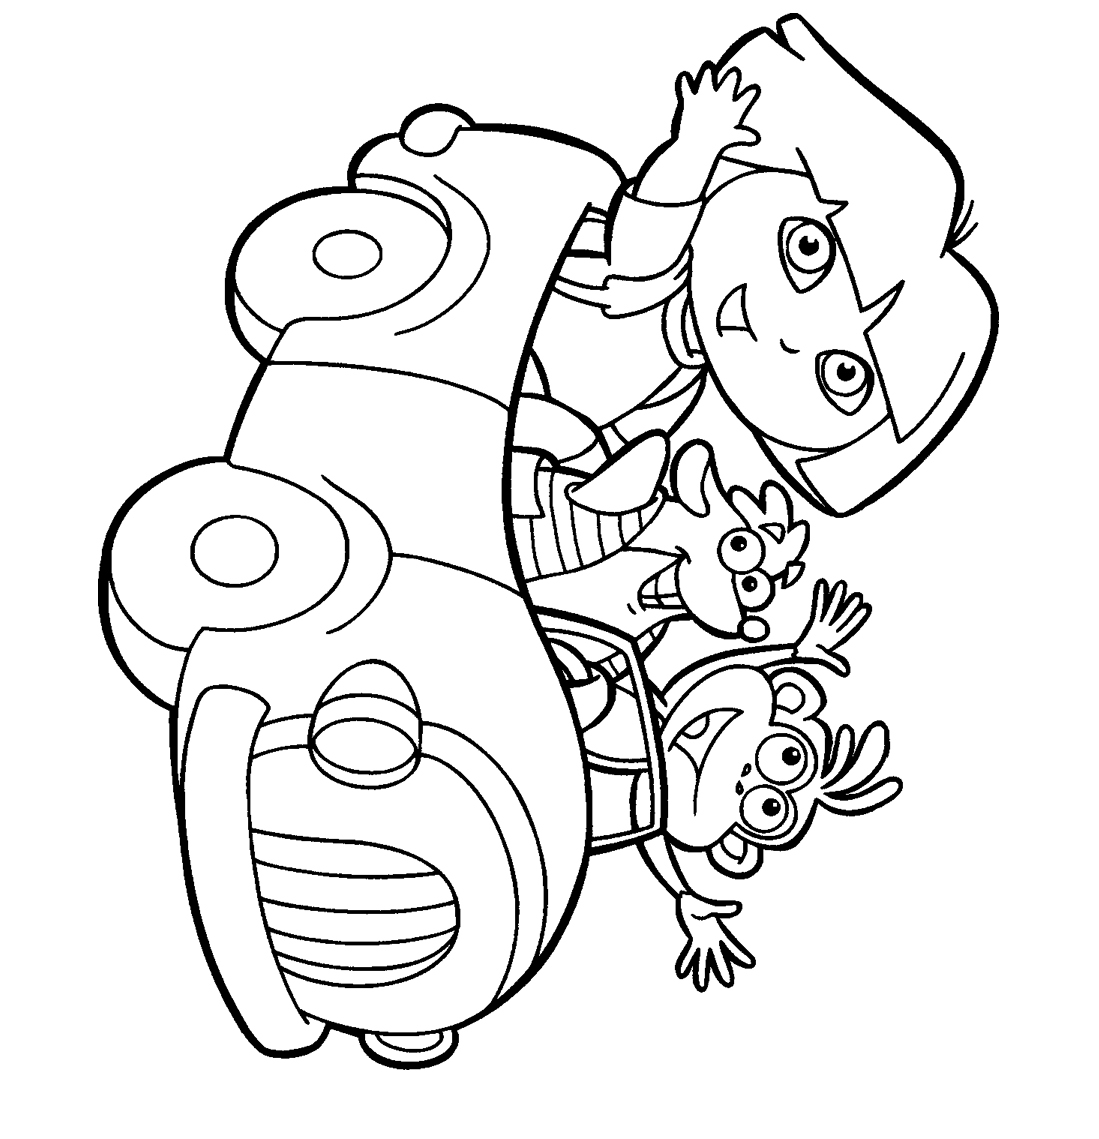 coloring pages online photo - 1